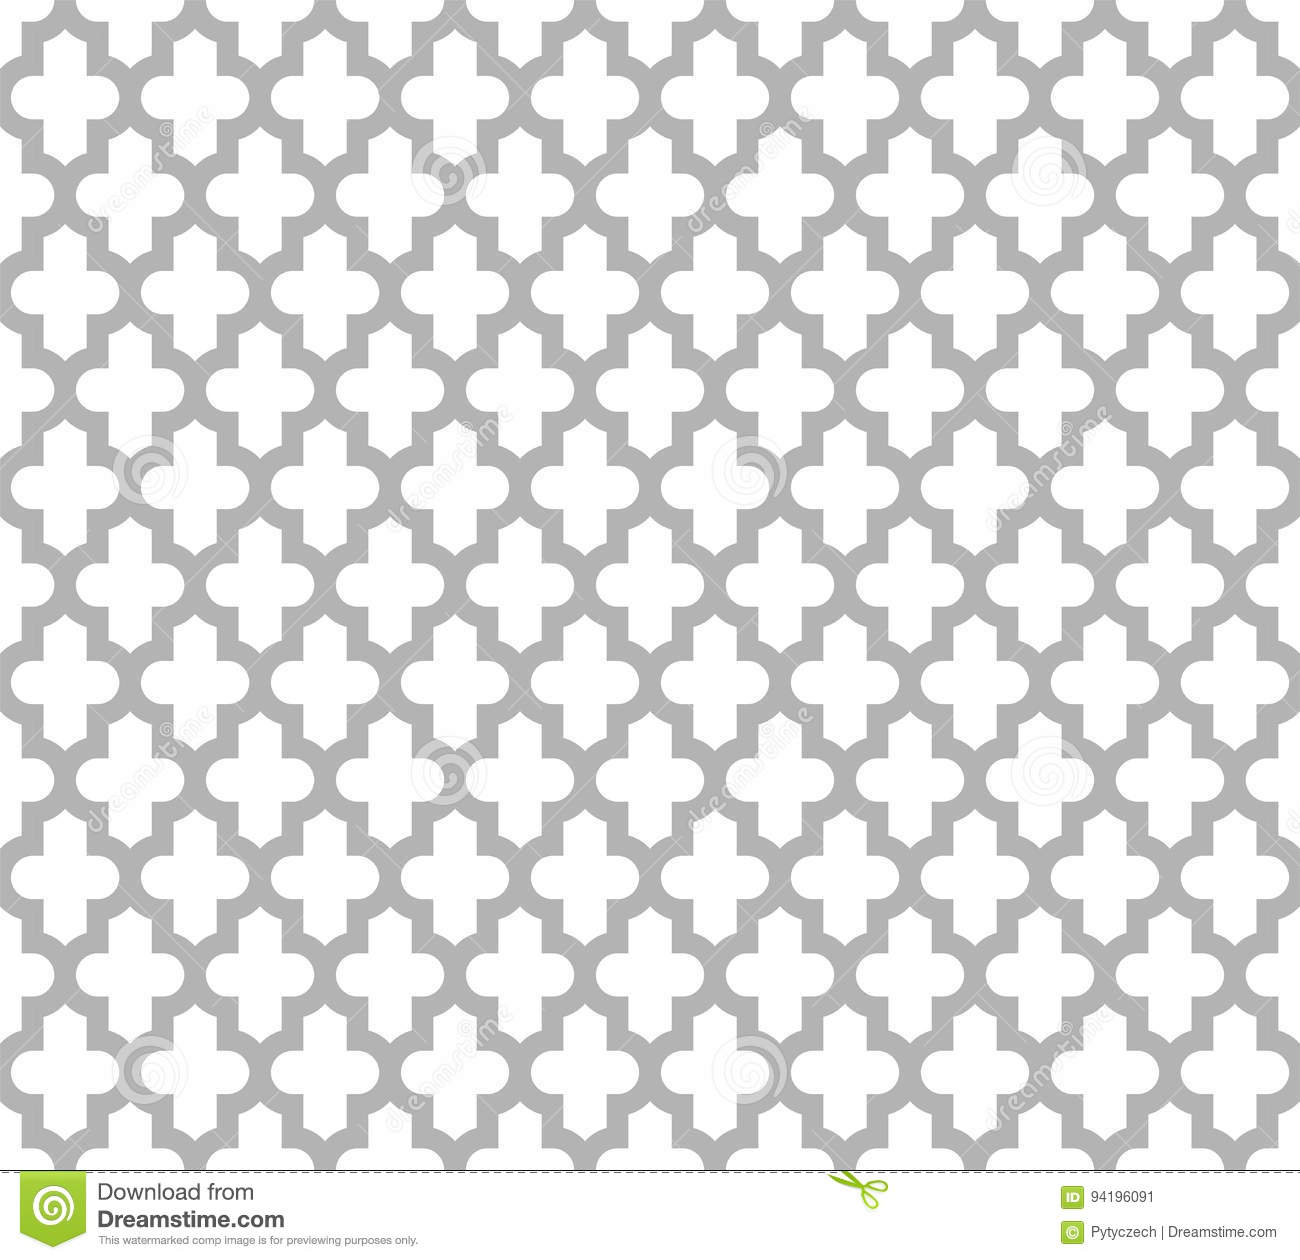 Moroccan Islamic Seamless Pattern Background In Grey And White Vintage Retro Abstract Ornamental Design Simple Stock Vector